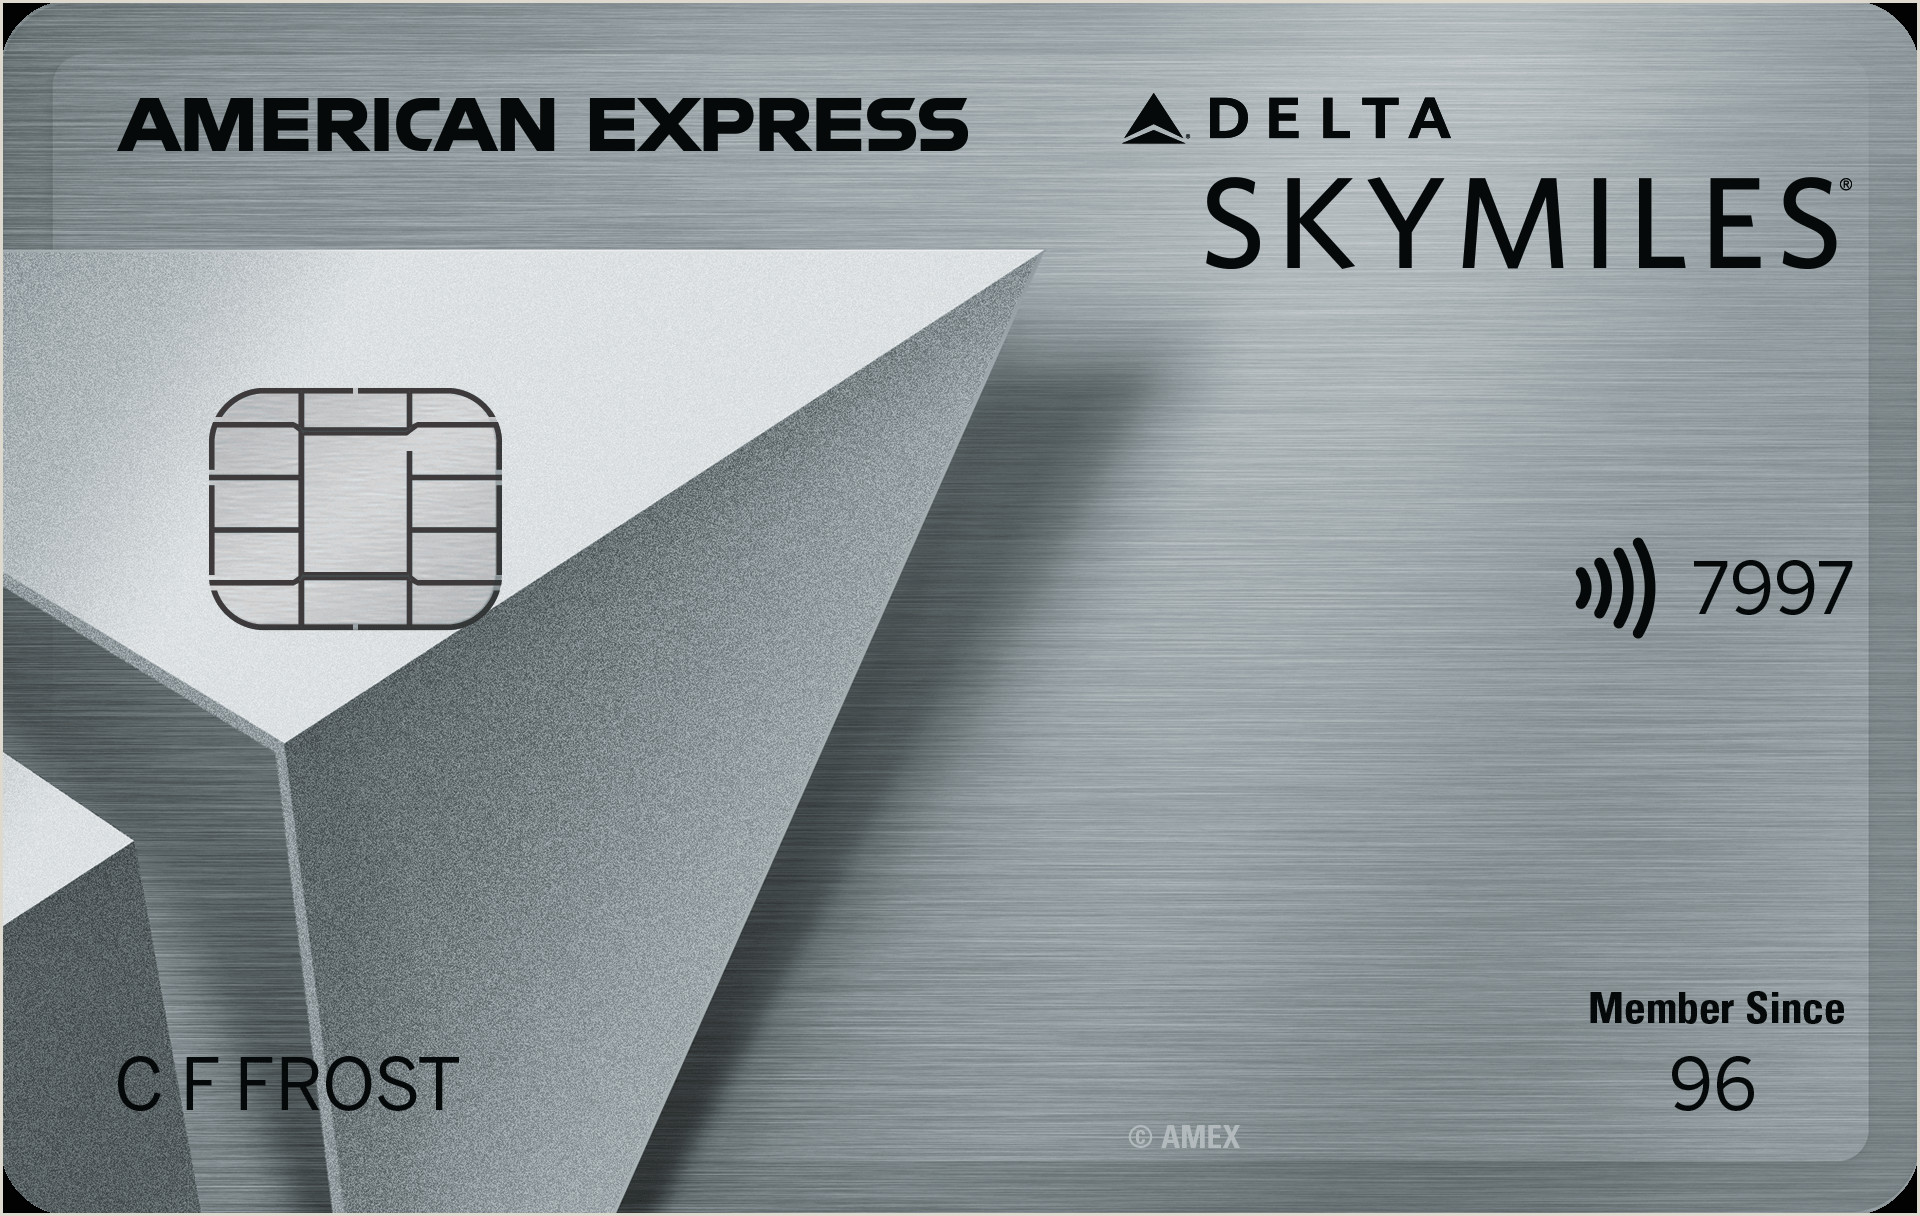 Frequent Miler Best Business Cards Best Fers Credit Cards With The Best Signup Offers